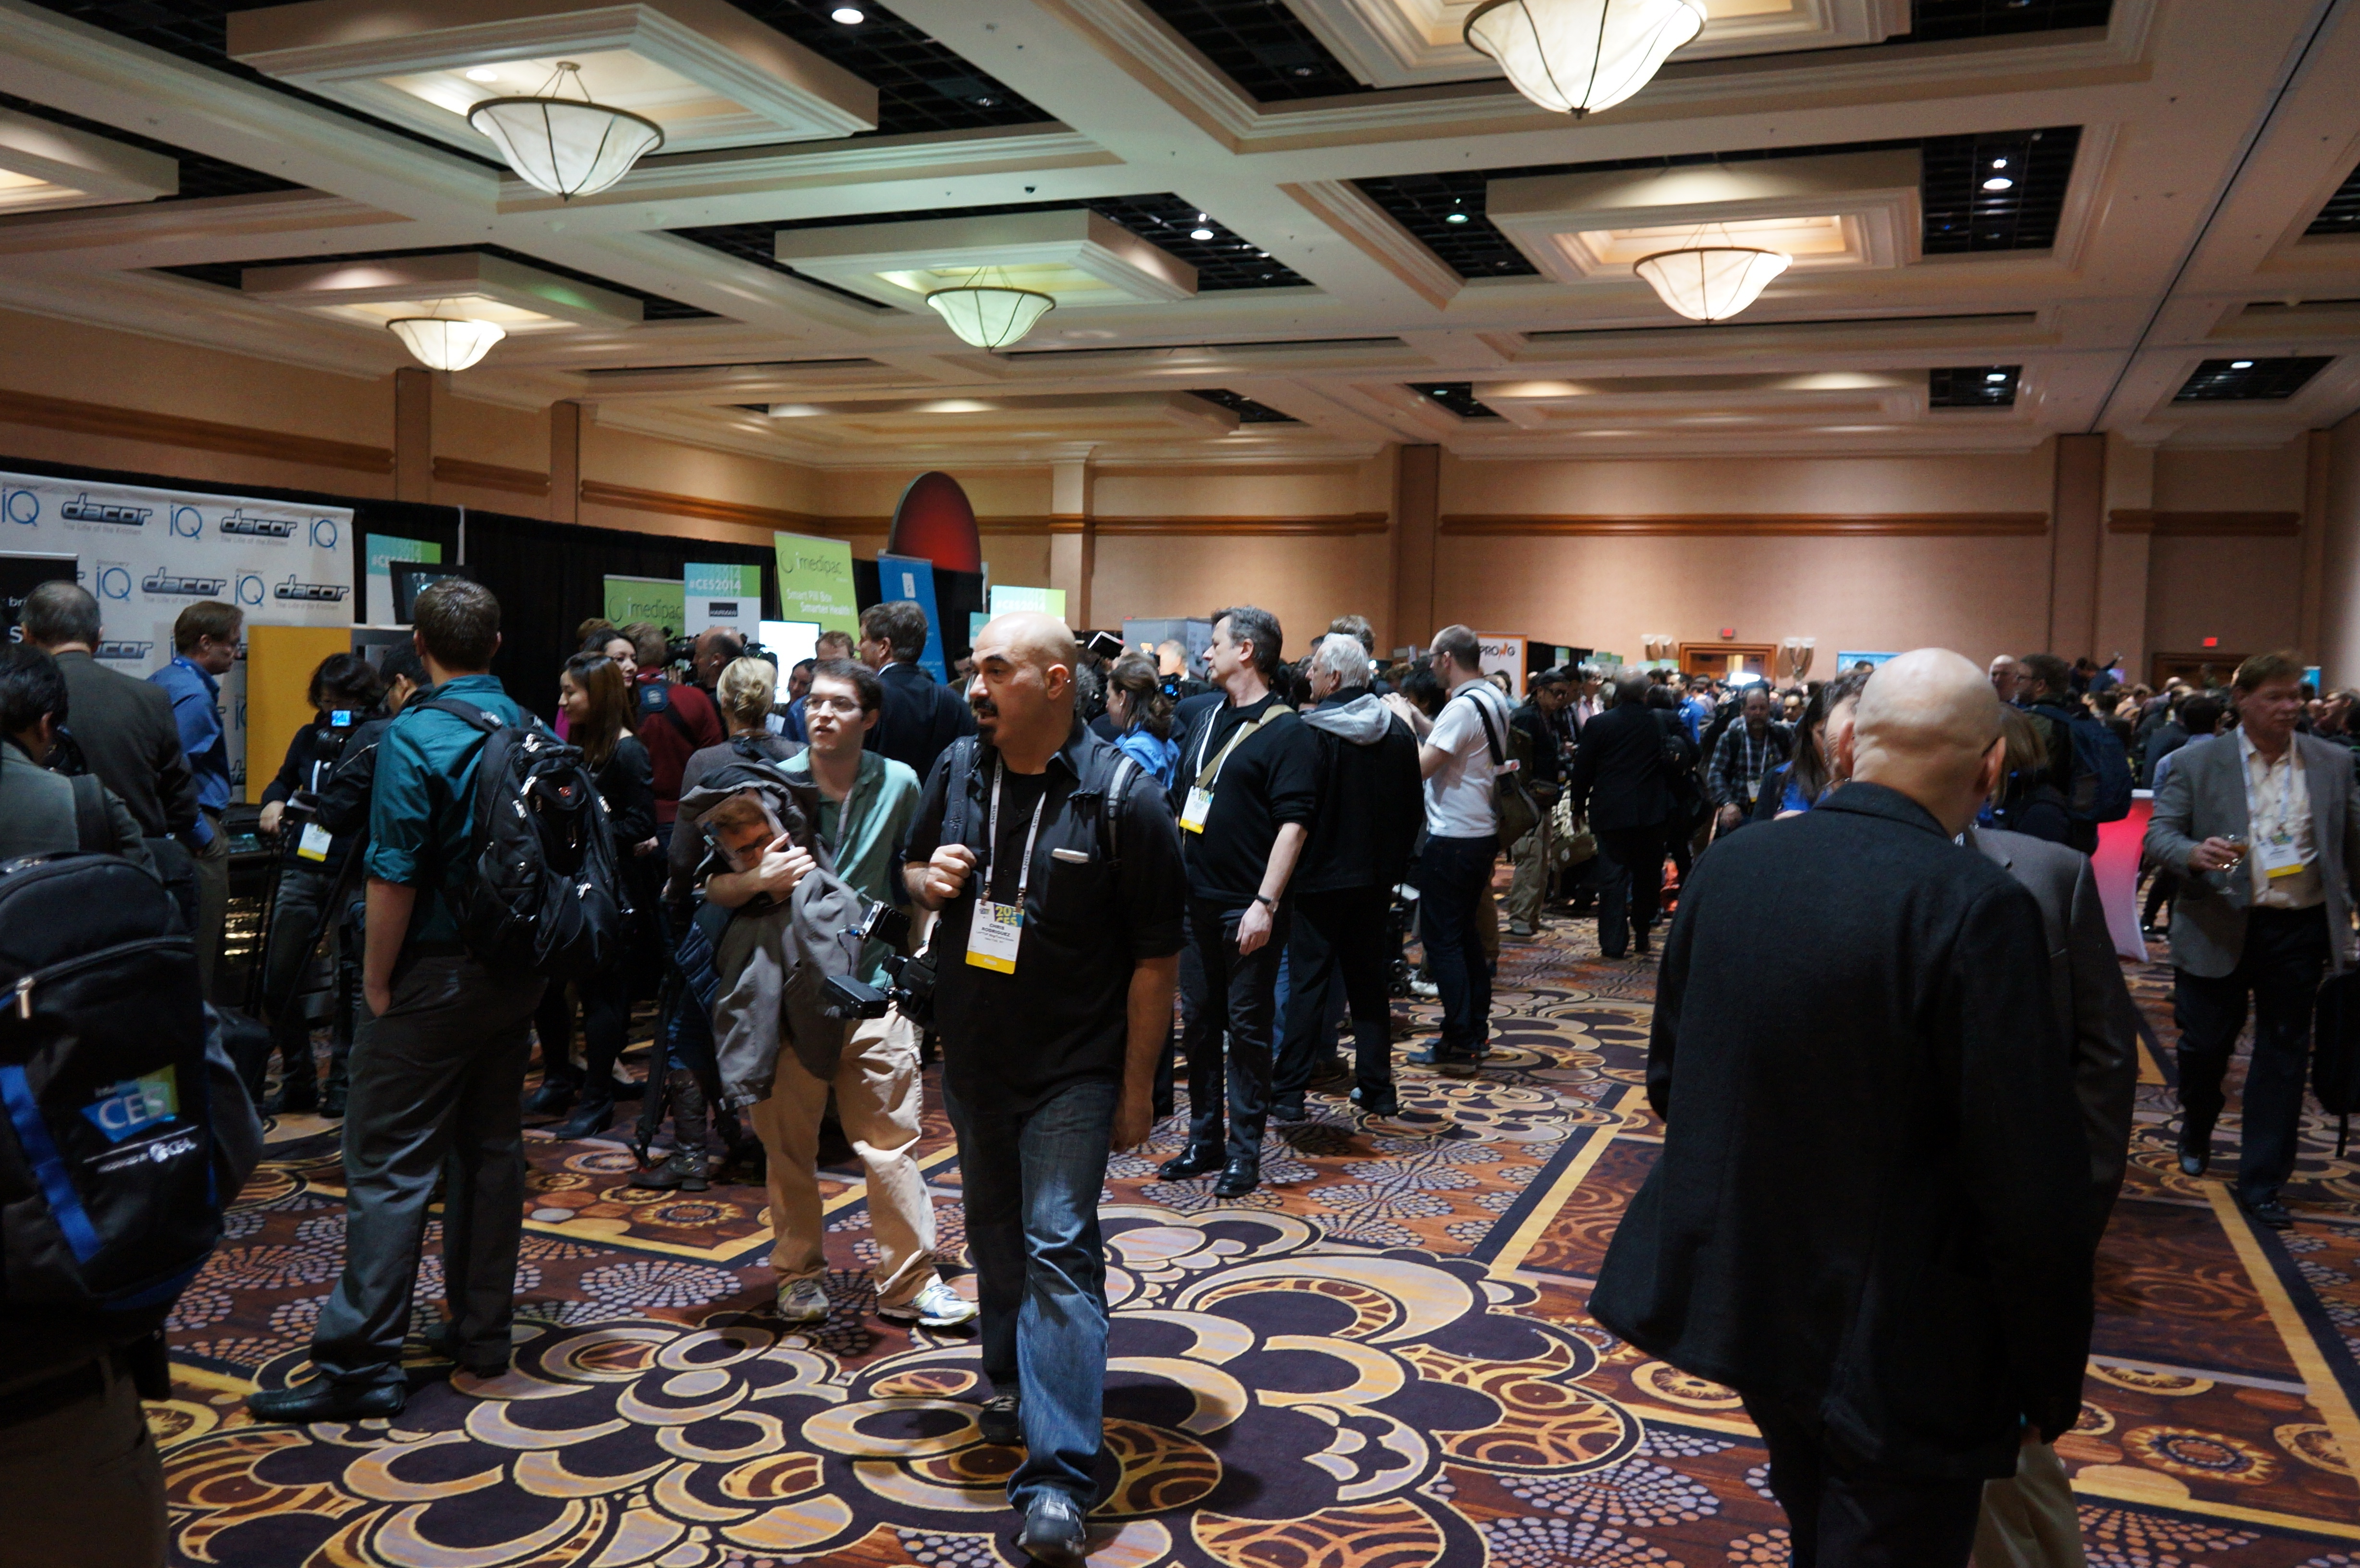 The first major CES press event was jam-packed this year.